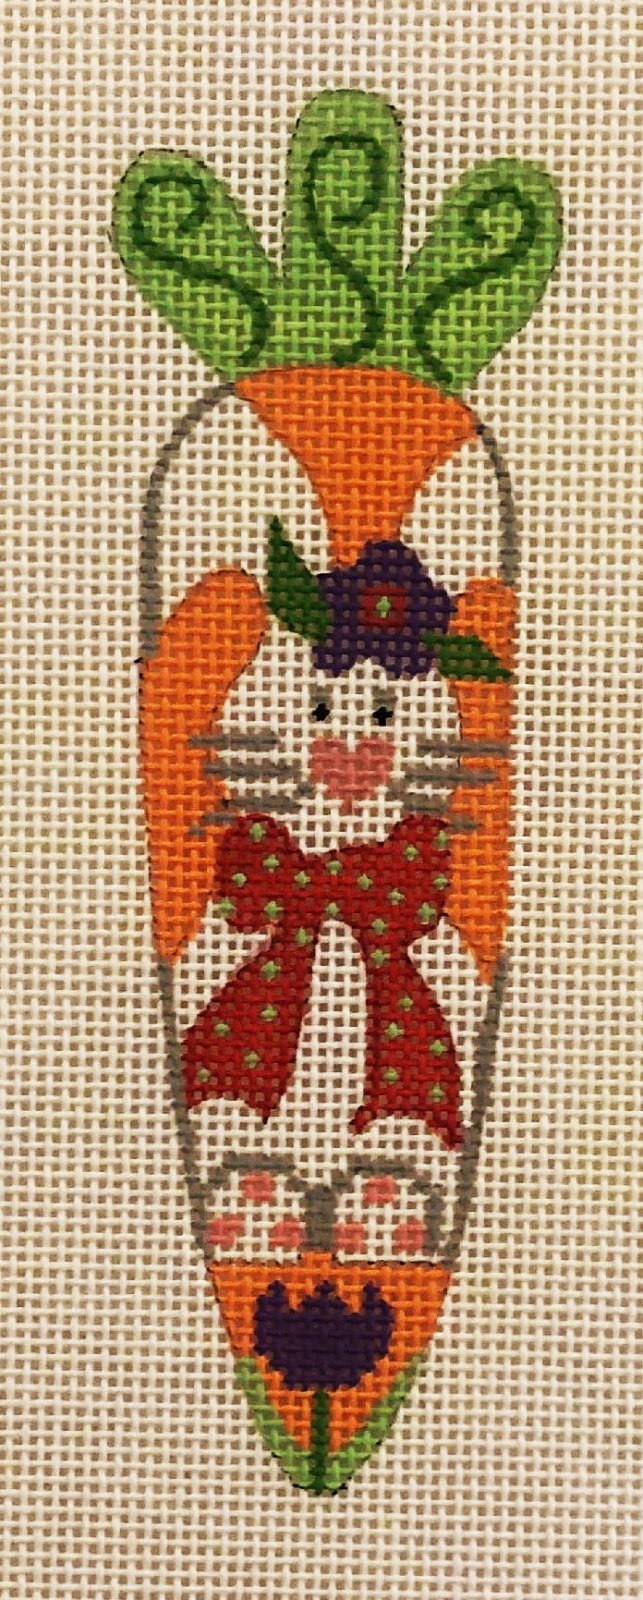 Carrot, Bunny with Bow